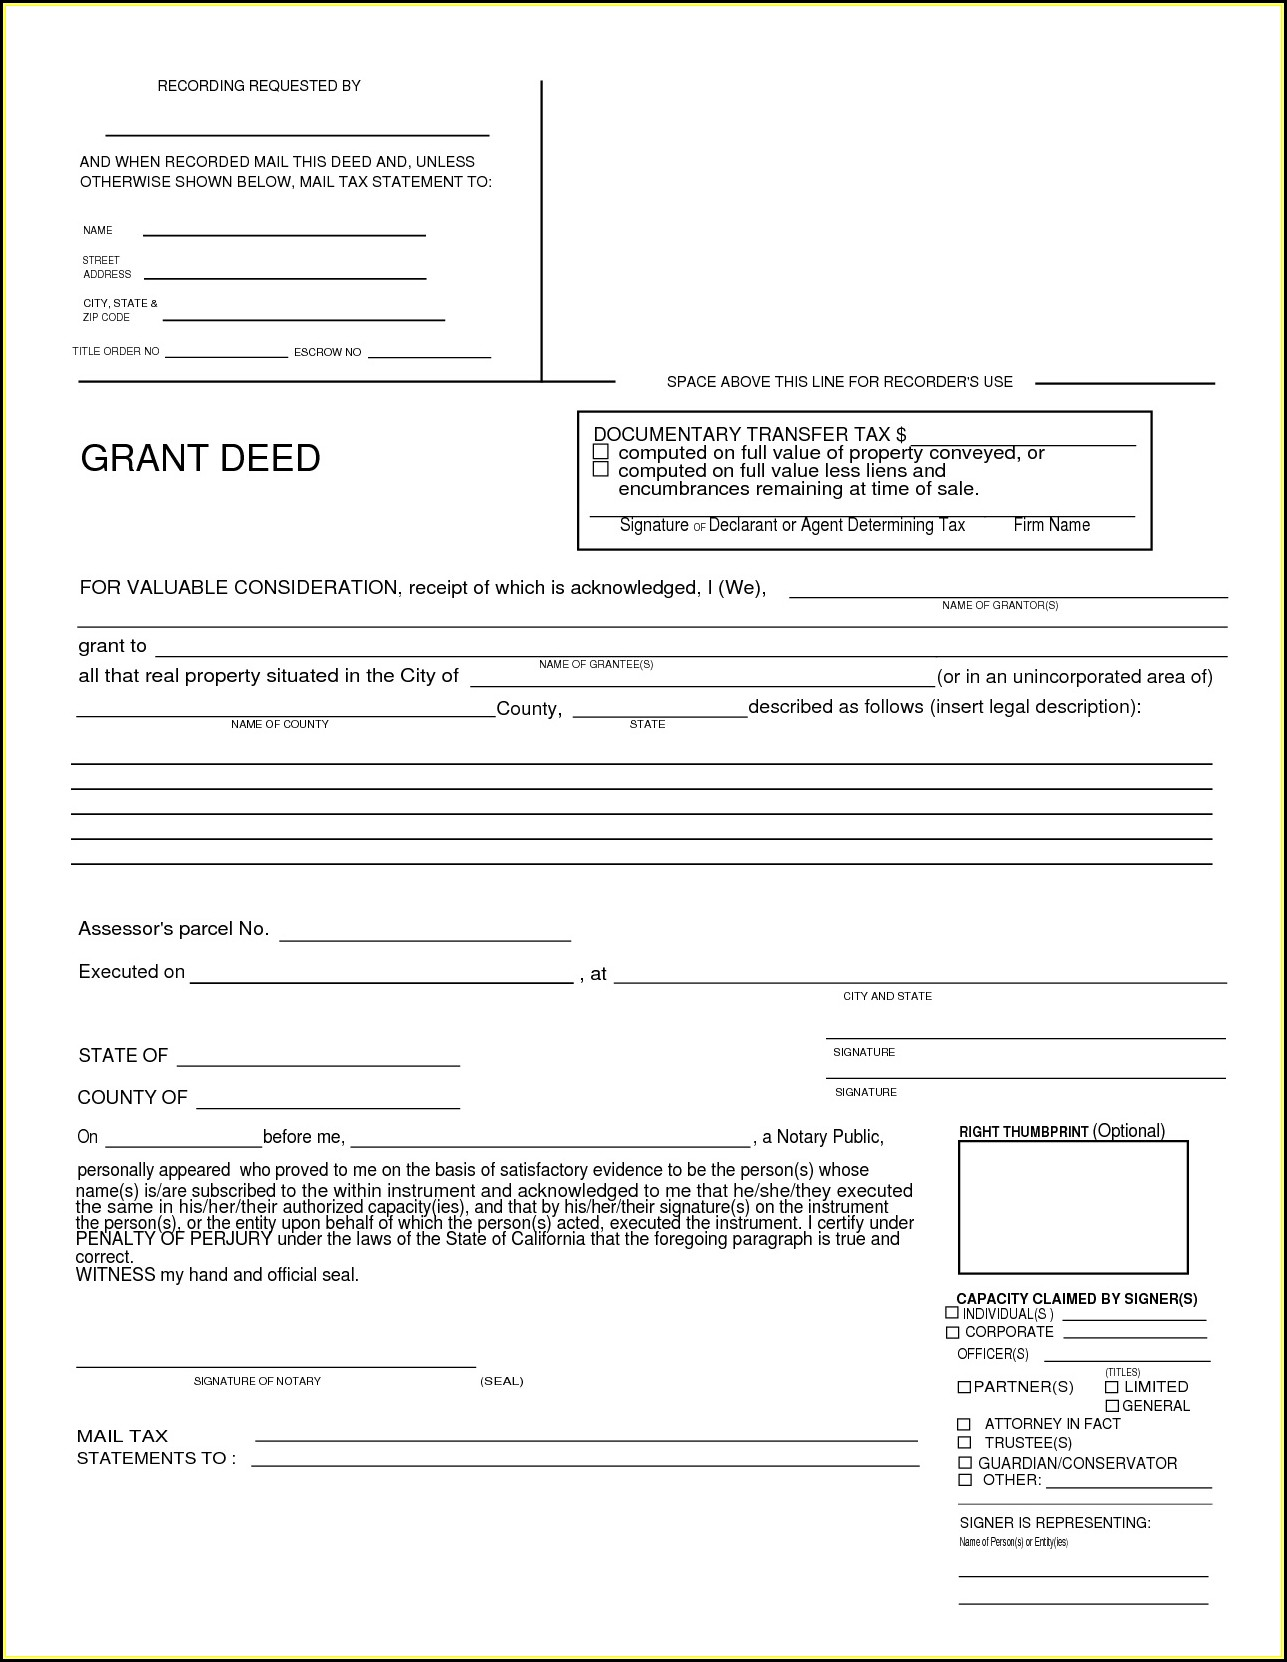 Grant Deed Form California Los Angeles County